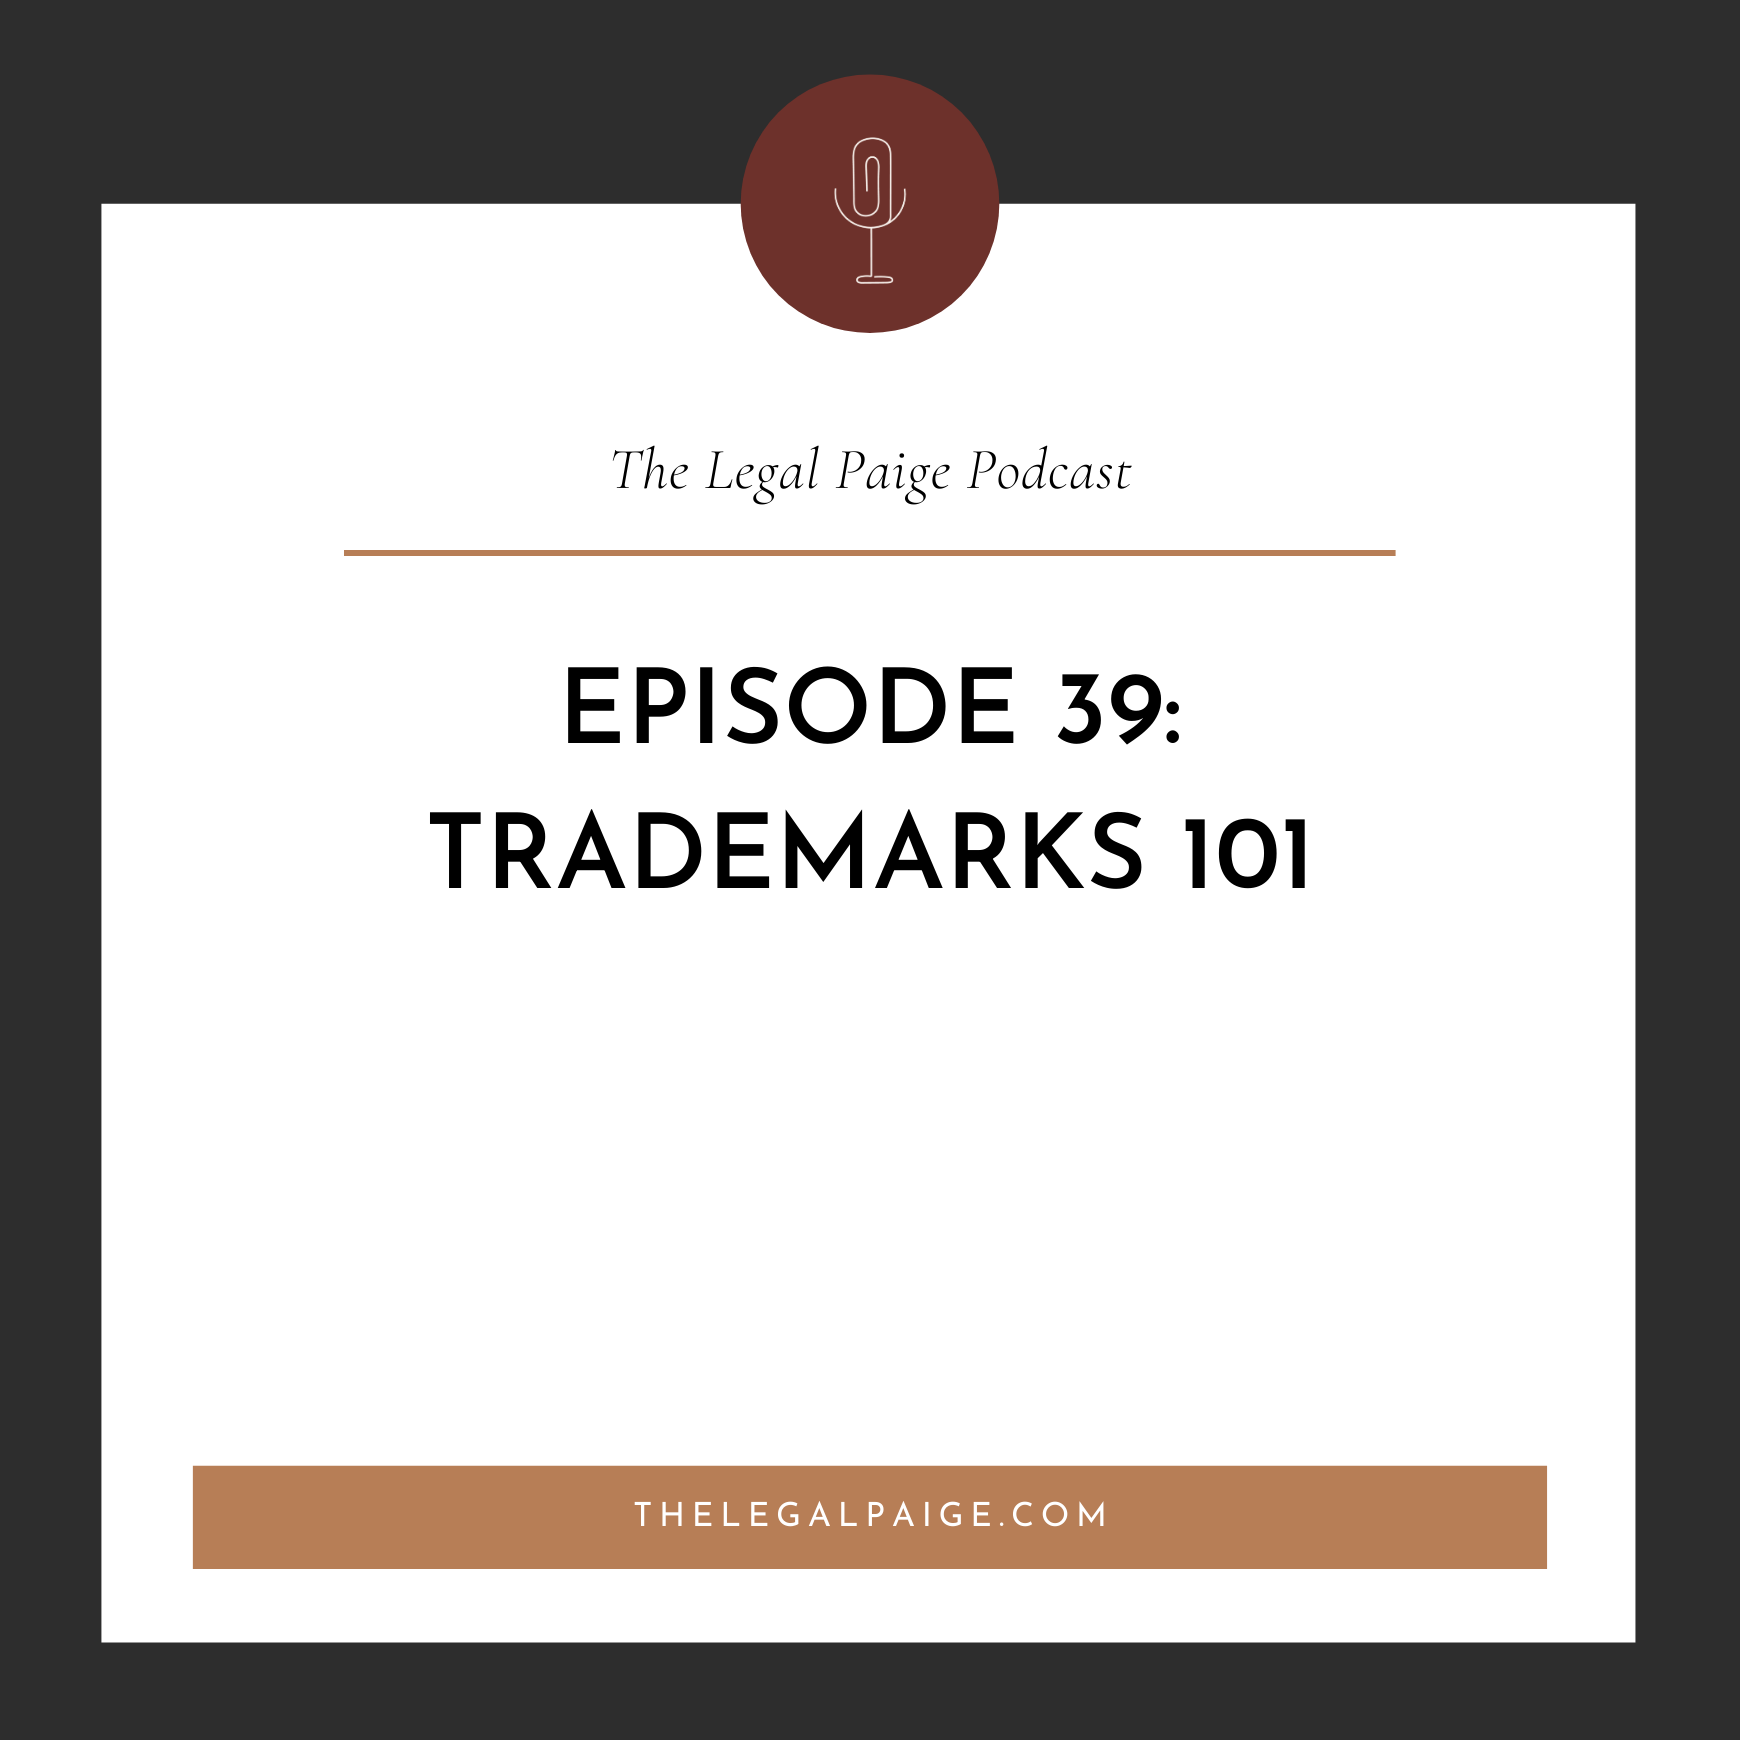 Episode 39: Trademarks 101